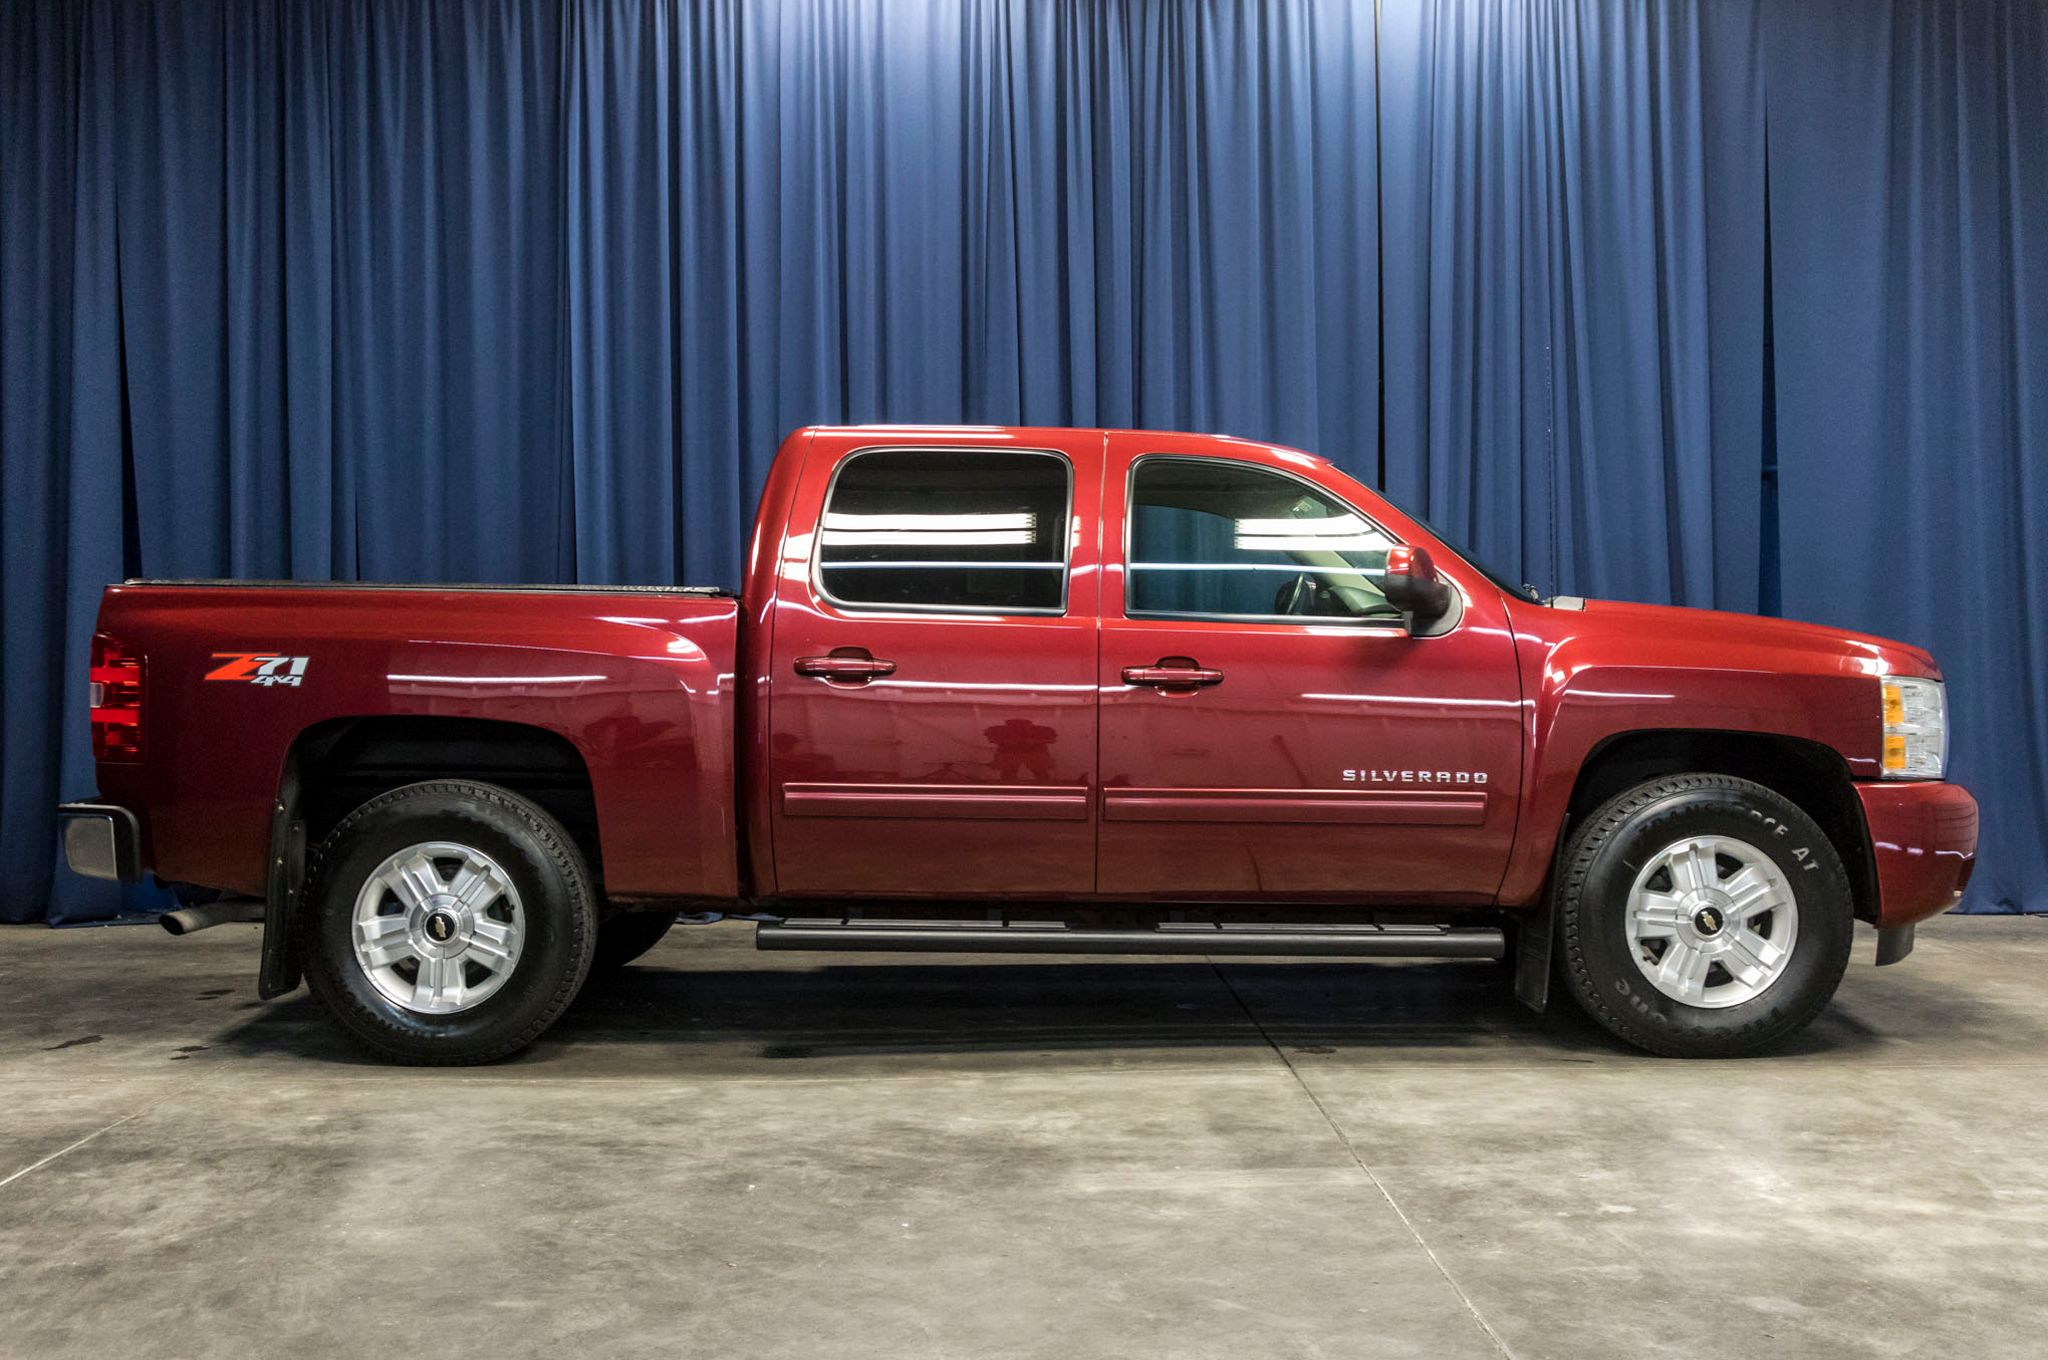 used 2013 chevrolet silverado 1500 ltz z71 4x4 truck for sale 44750. Black Bedroom Furniture Sets. Home Design Ideas